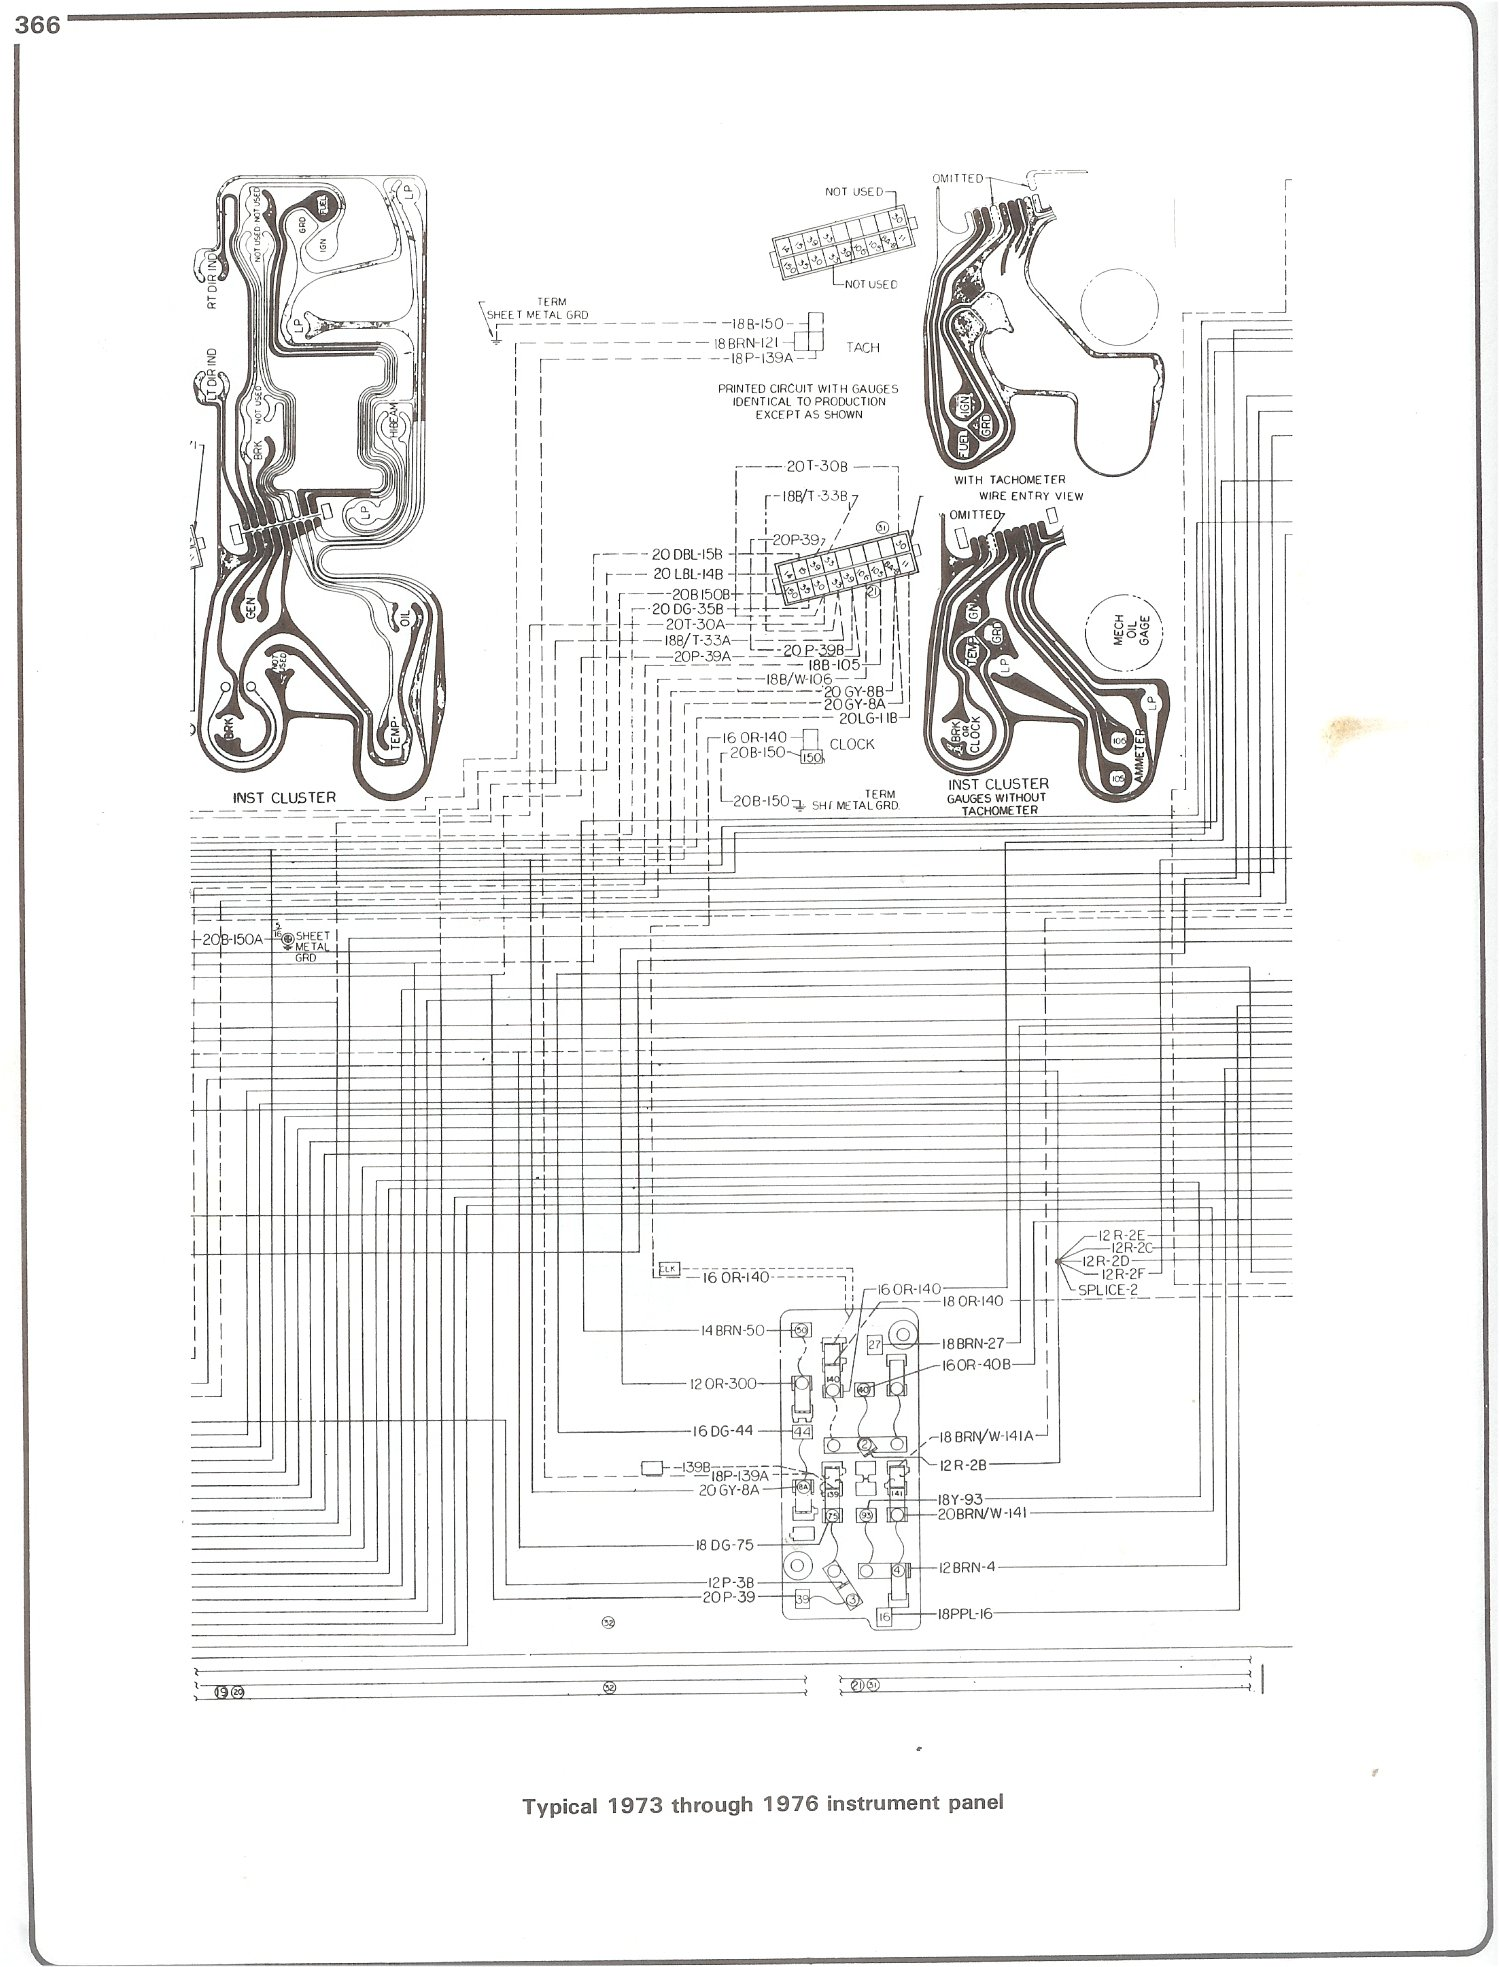 73 76_instrument complete 73 87 wiring diagrams chevy truck wiring harness diagram at mr168.co